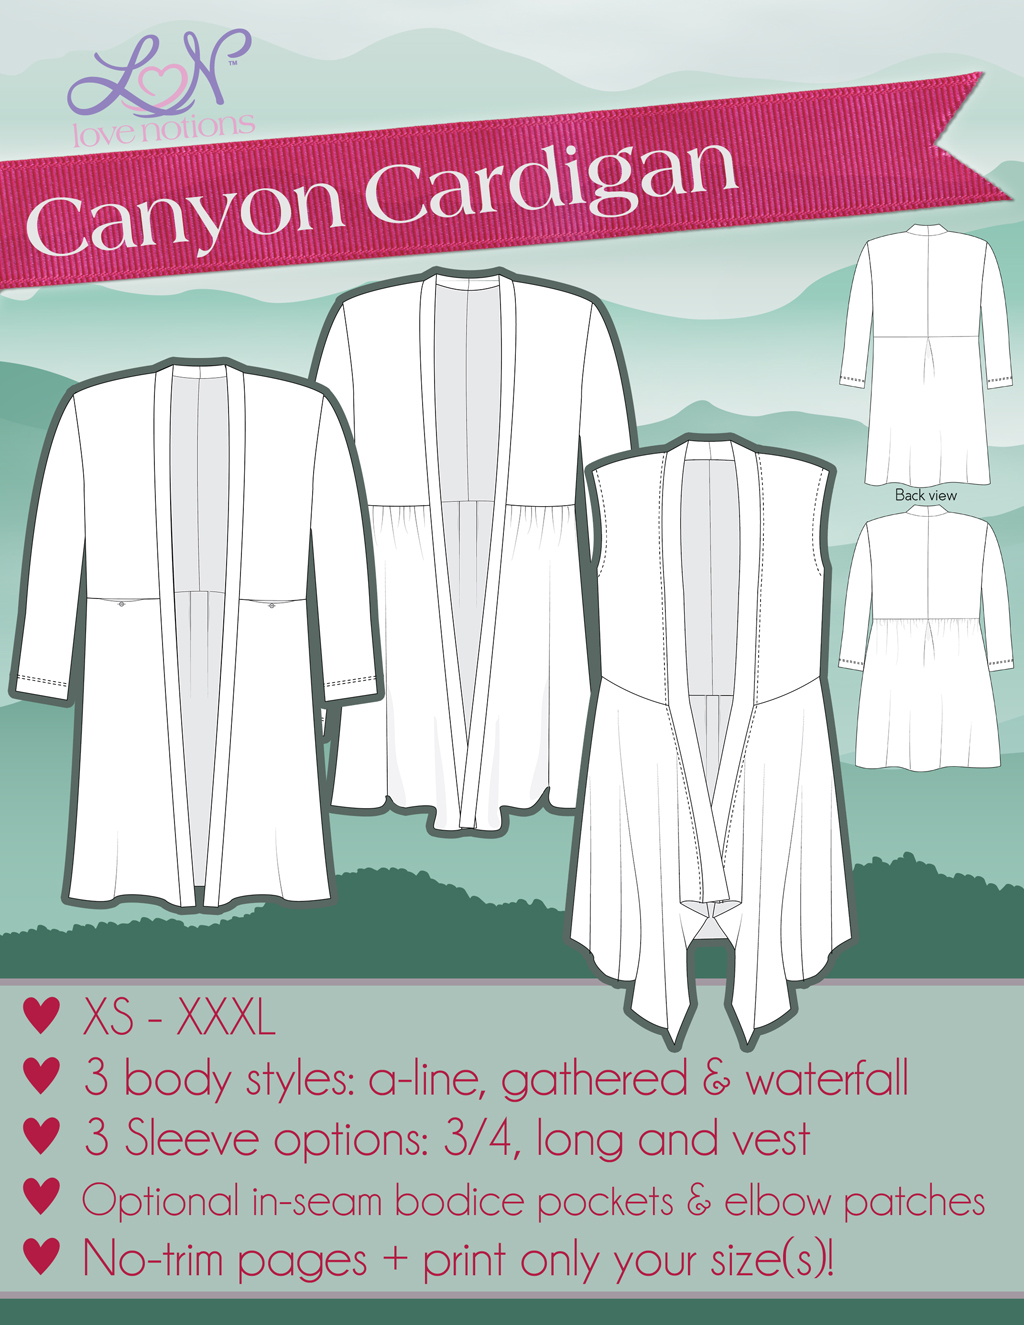 Love Notions Canyon Cardigan Downloadable Pattern